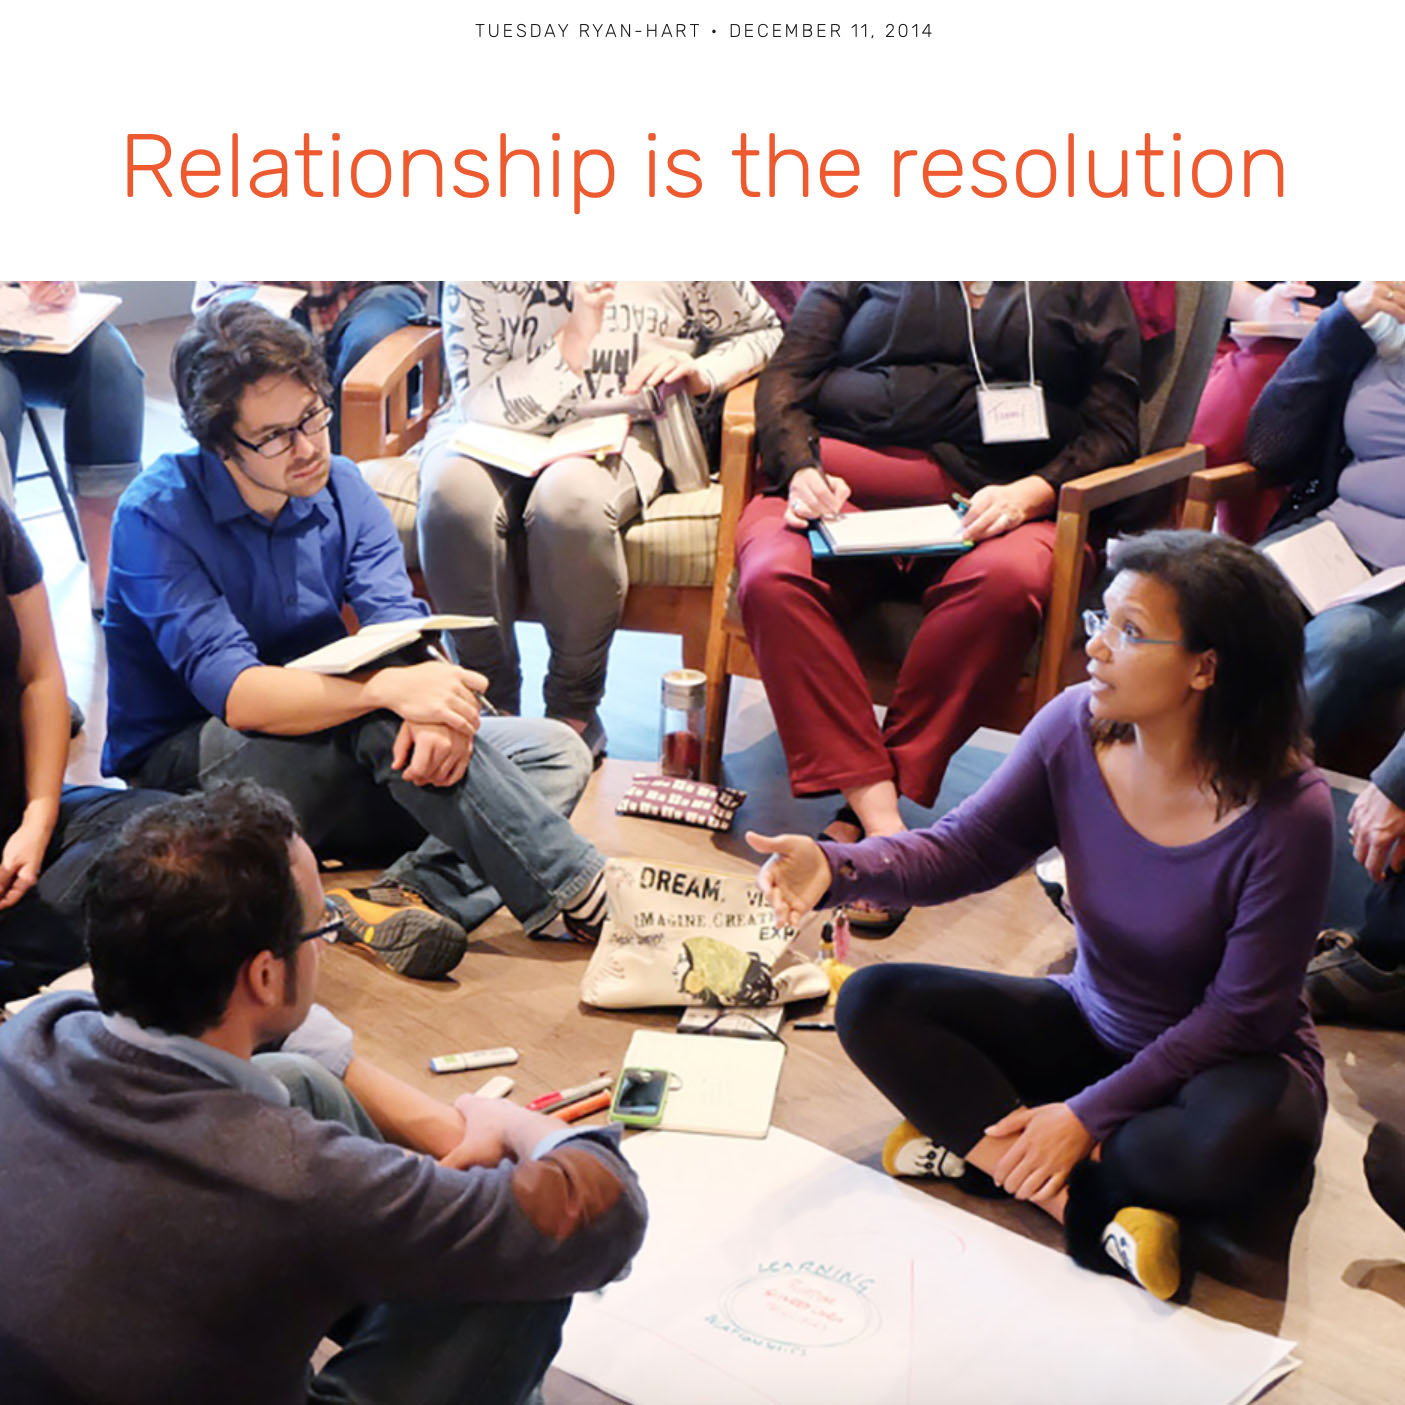 """BLOG:  Relationship is the resolution  / """"This resolution in relationship is not neat and tidy, but more real, deep, and entirely based in practicing together. The relationship is our resolution...."""""""